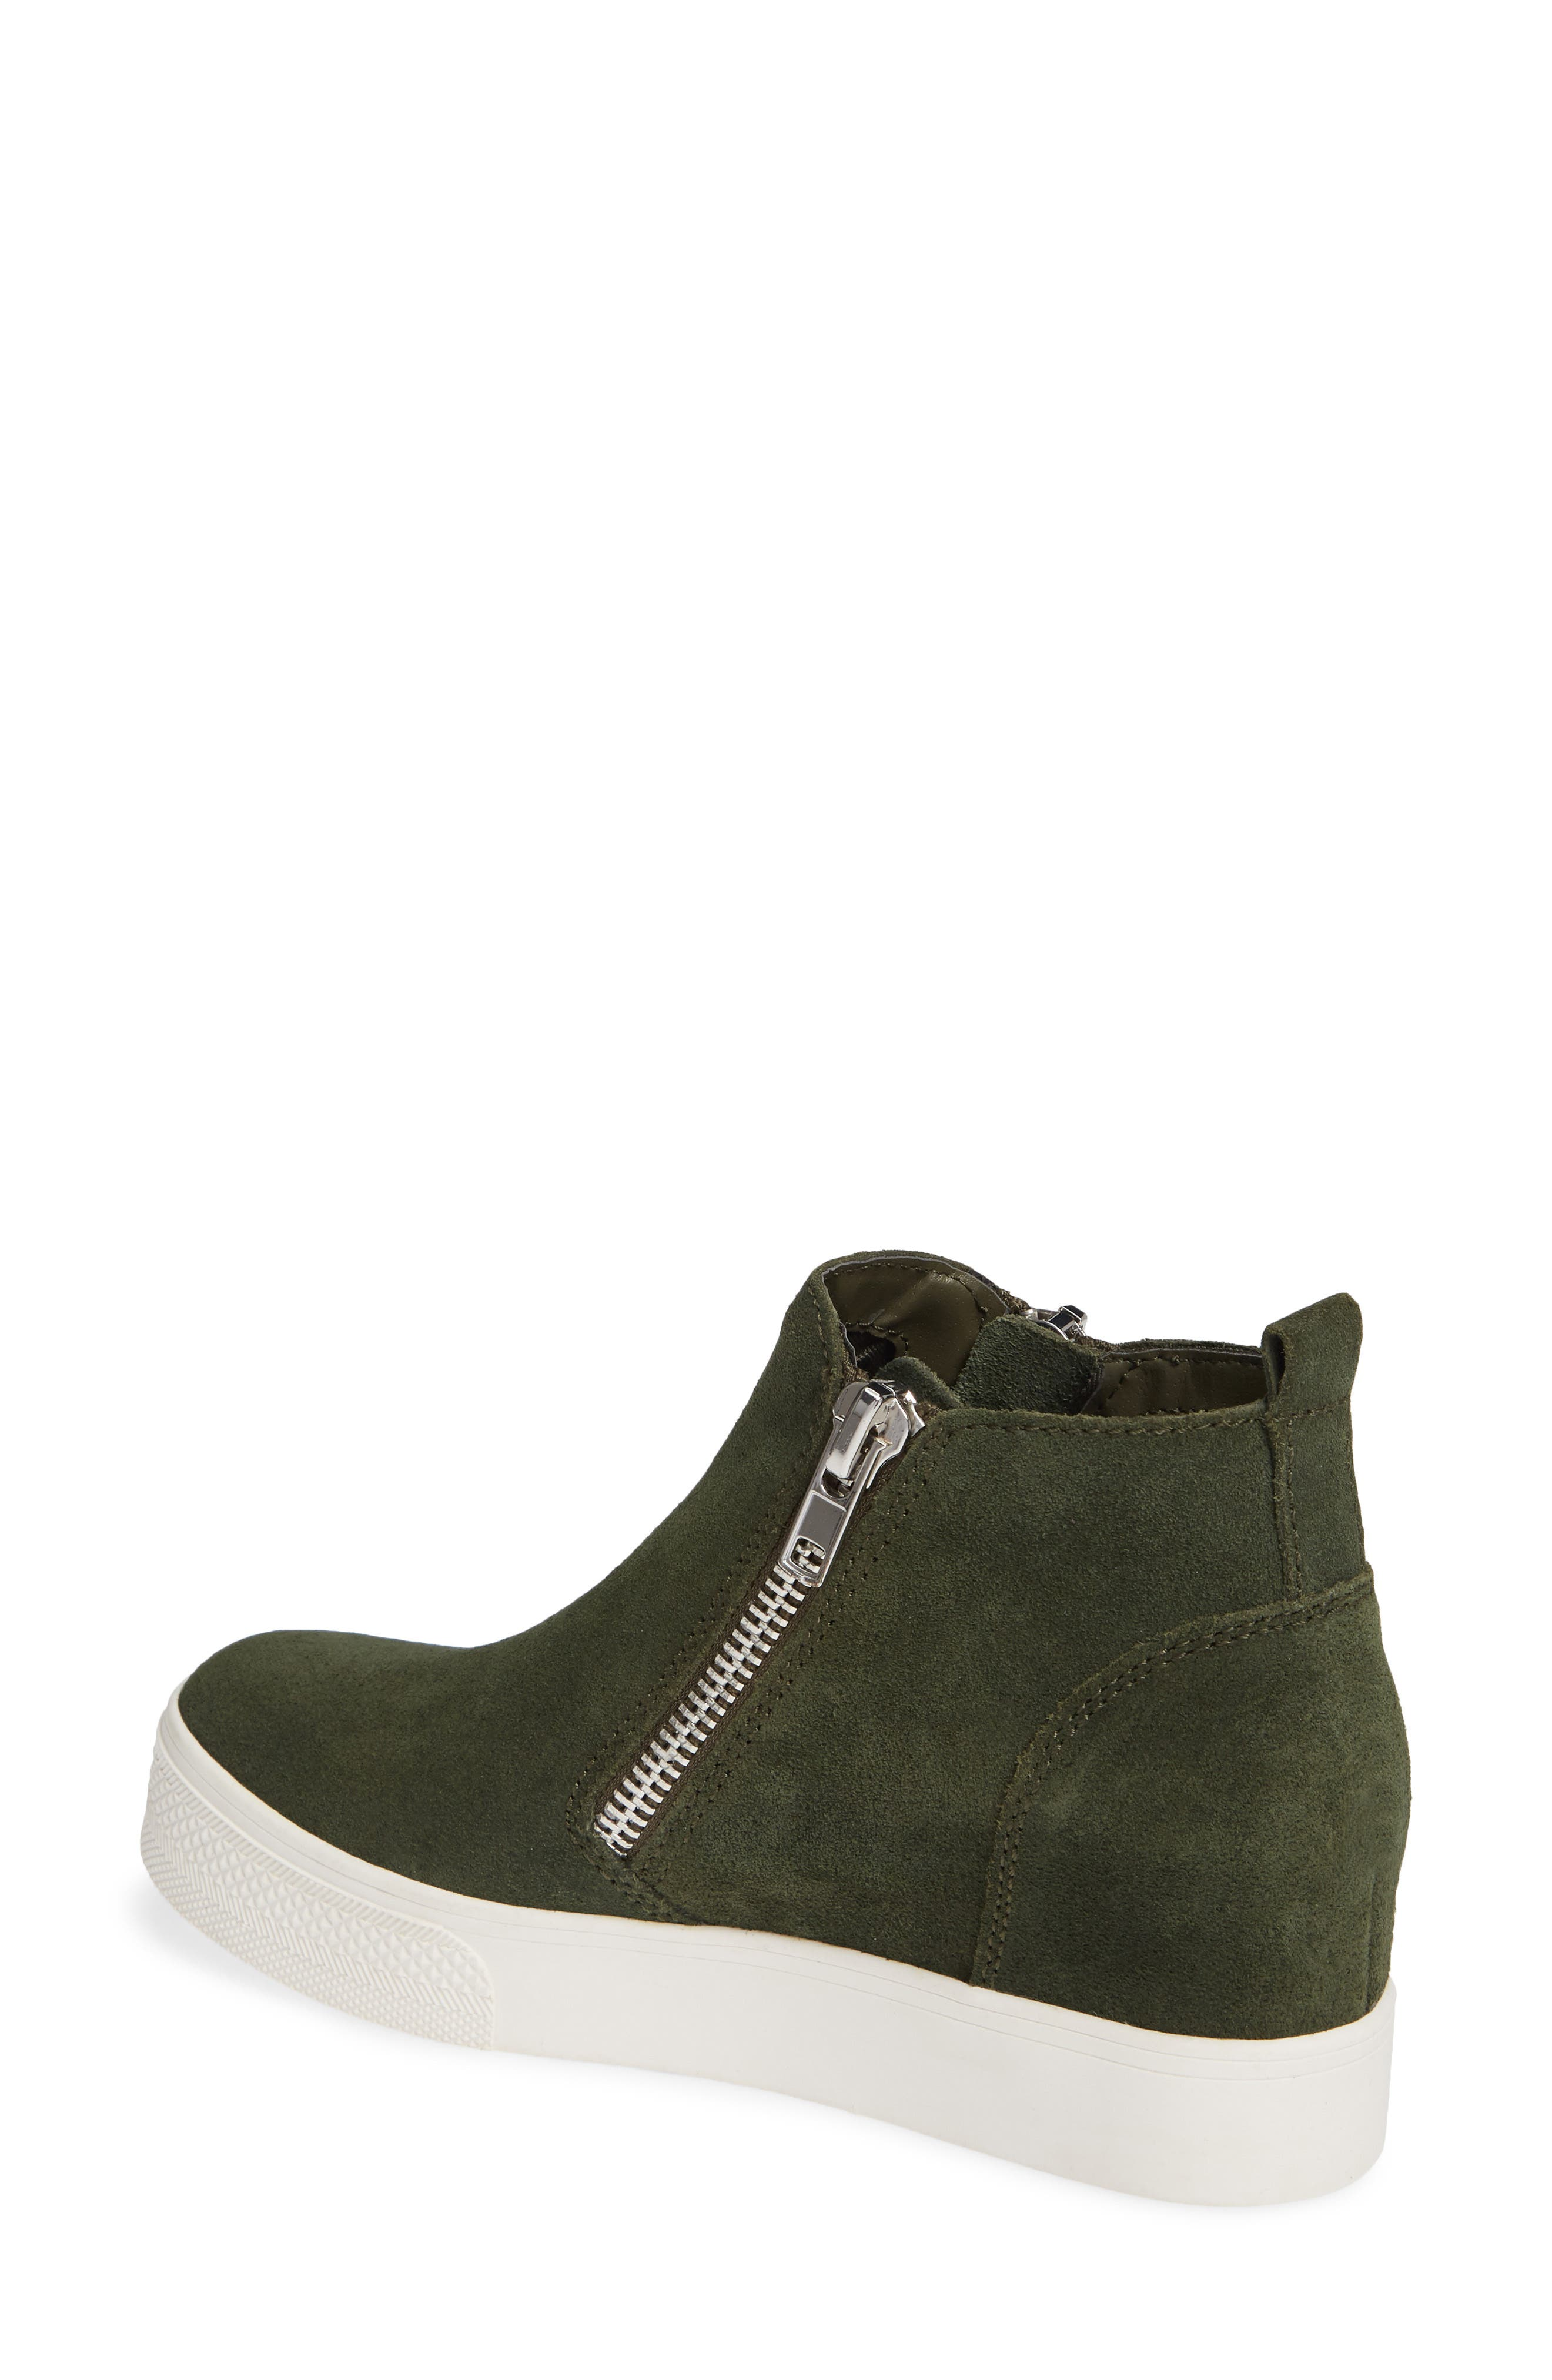 Wedgie High Top Platform Sneaker,                             Alternate thumbnail 2, color,                             Olive/ Olive Suede